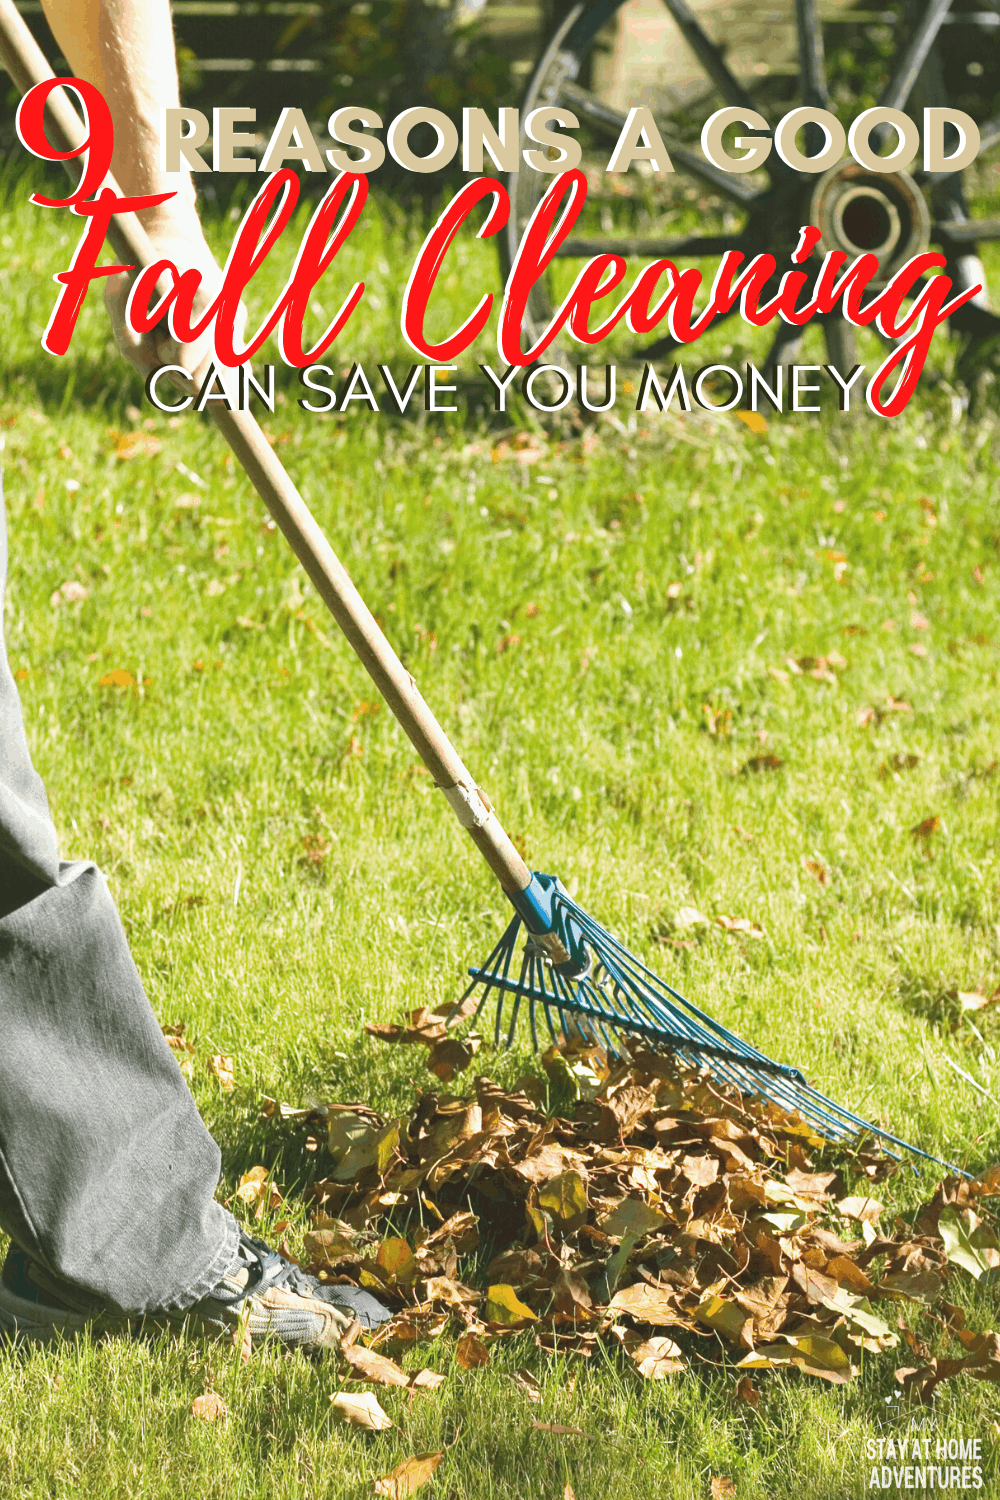 Fall cleaning and saving money go hand in hand and to prove it here are nine ways to clean your home this season and save money at the same time. Download the free planner and start cleaning and saving. via @mystayathome